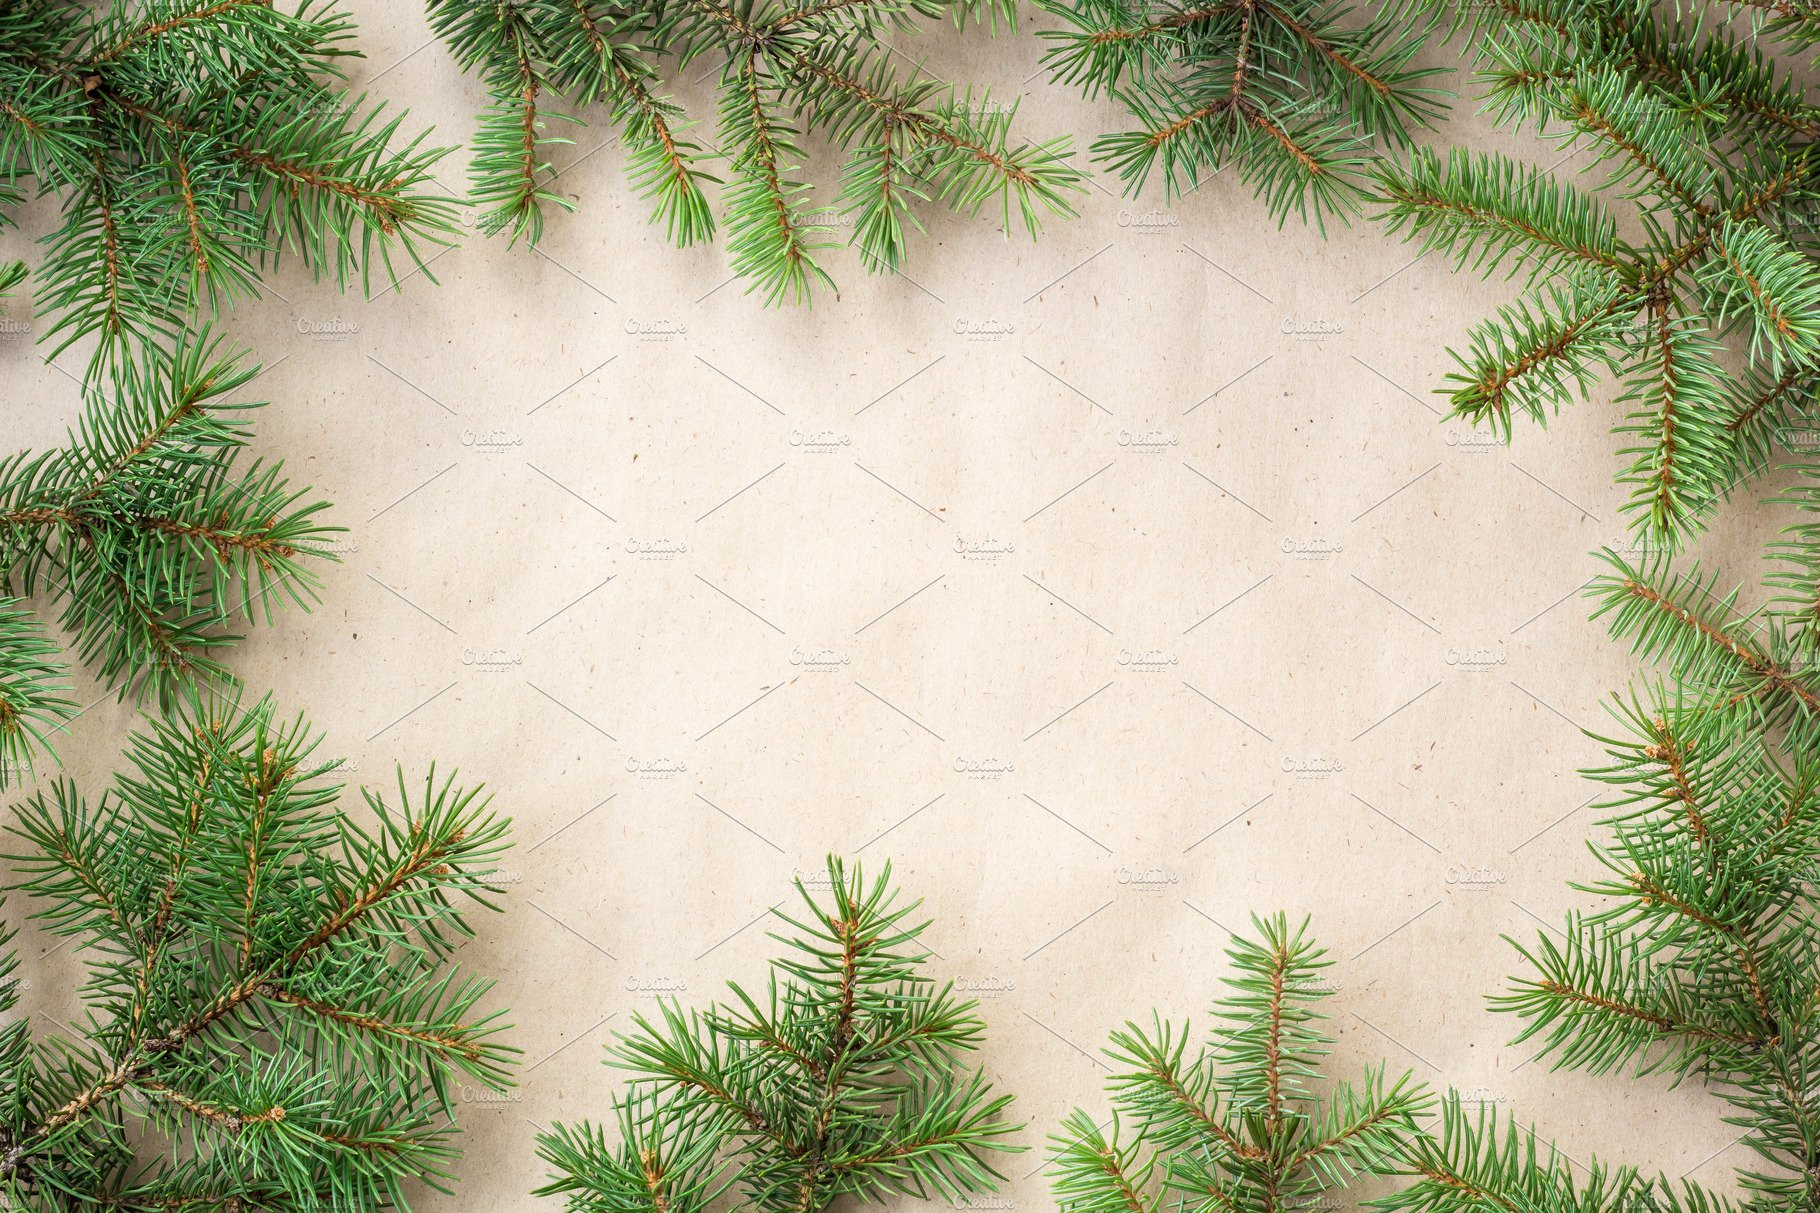 Fir Branches Border On Light Rustic Background Good For Christmas Backdrop